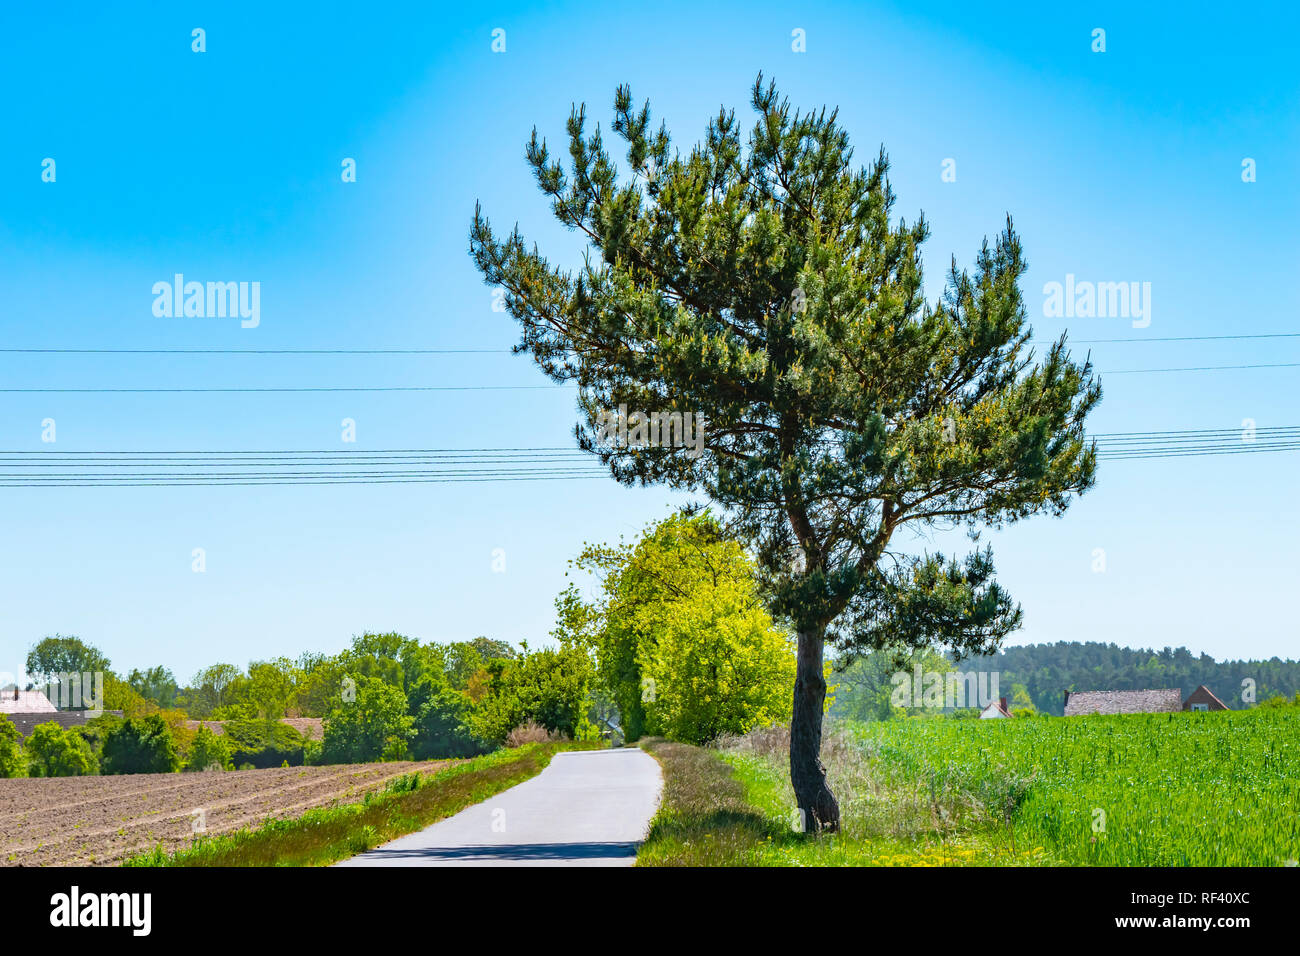 View to a path for cyclists and skaters in the local recreational area 'Flaeming-Skate' near Berlin, Germany. - Stock Image